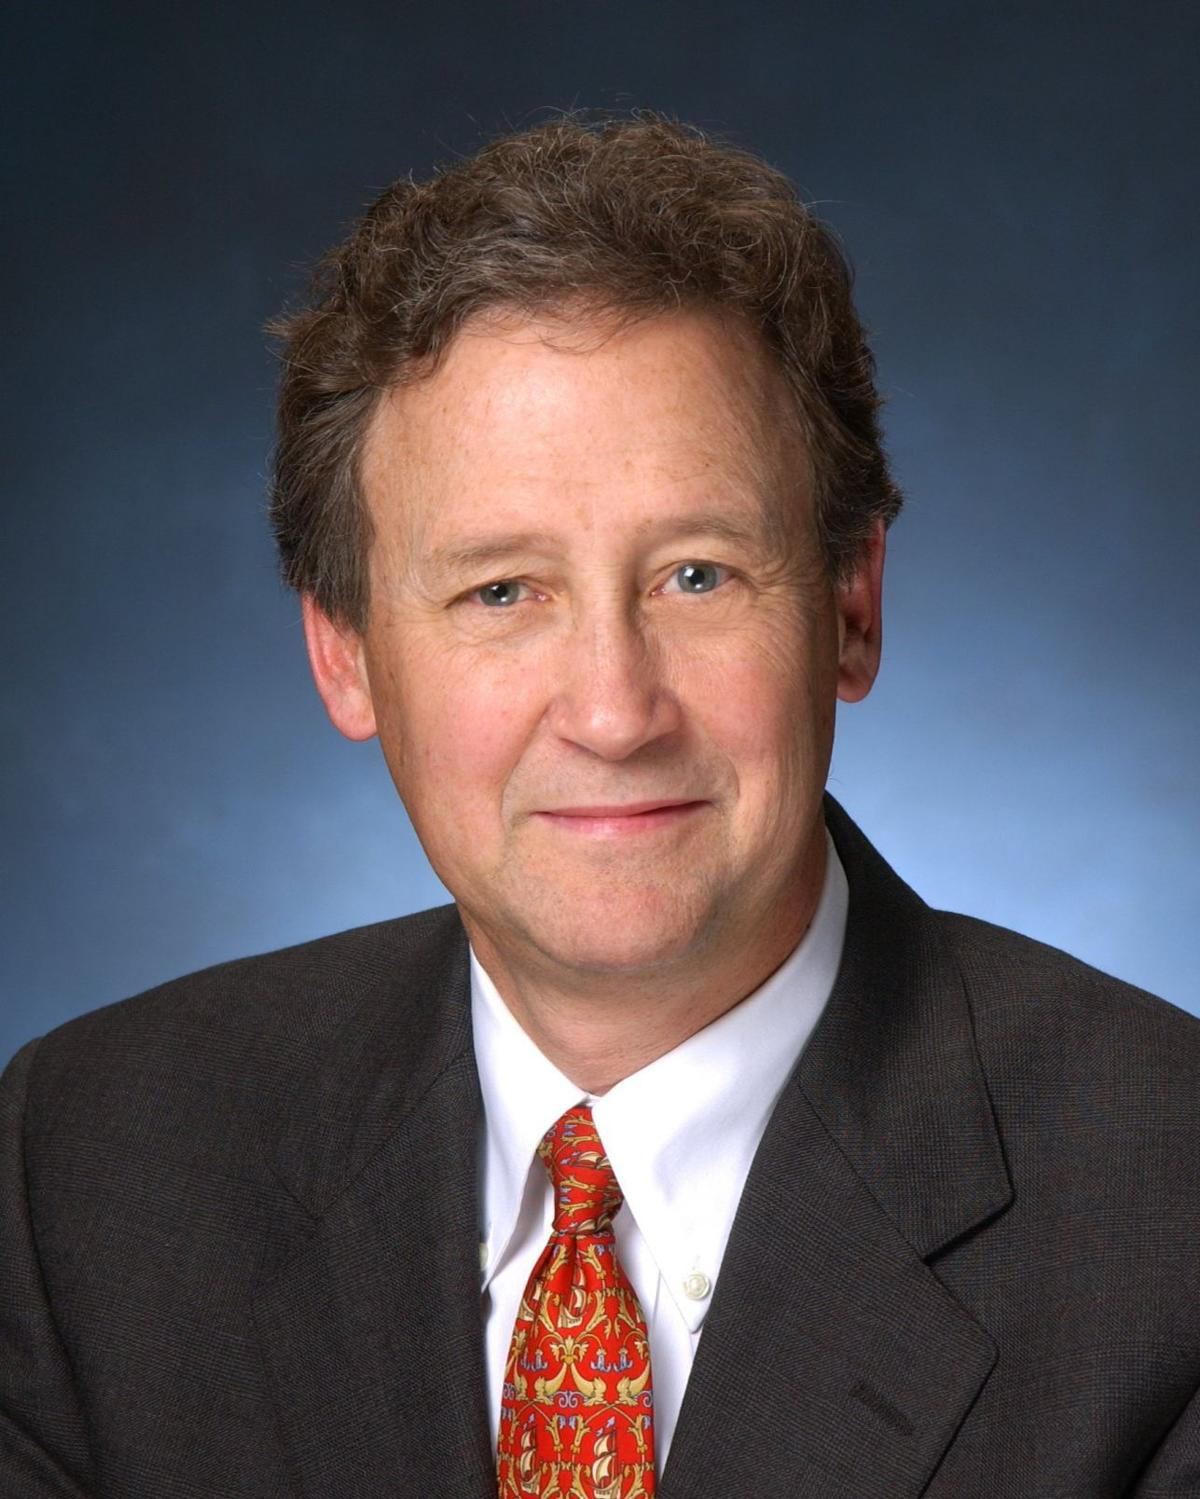 eulich takes chair at enterprise financial business stltoday com john s eulich non executive chairman of the board at enterprise financial services corp